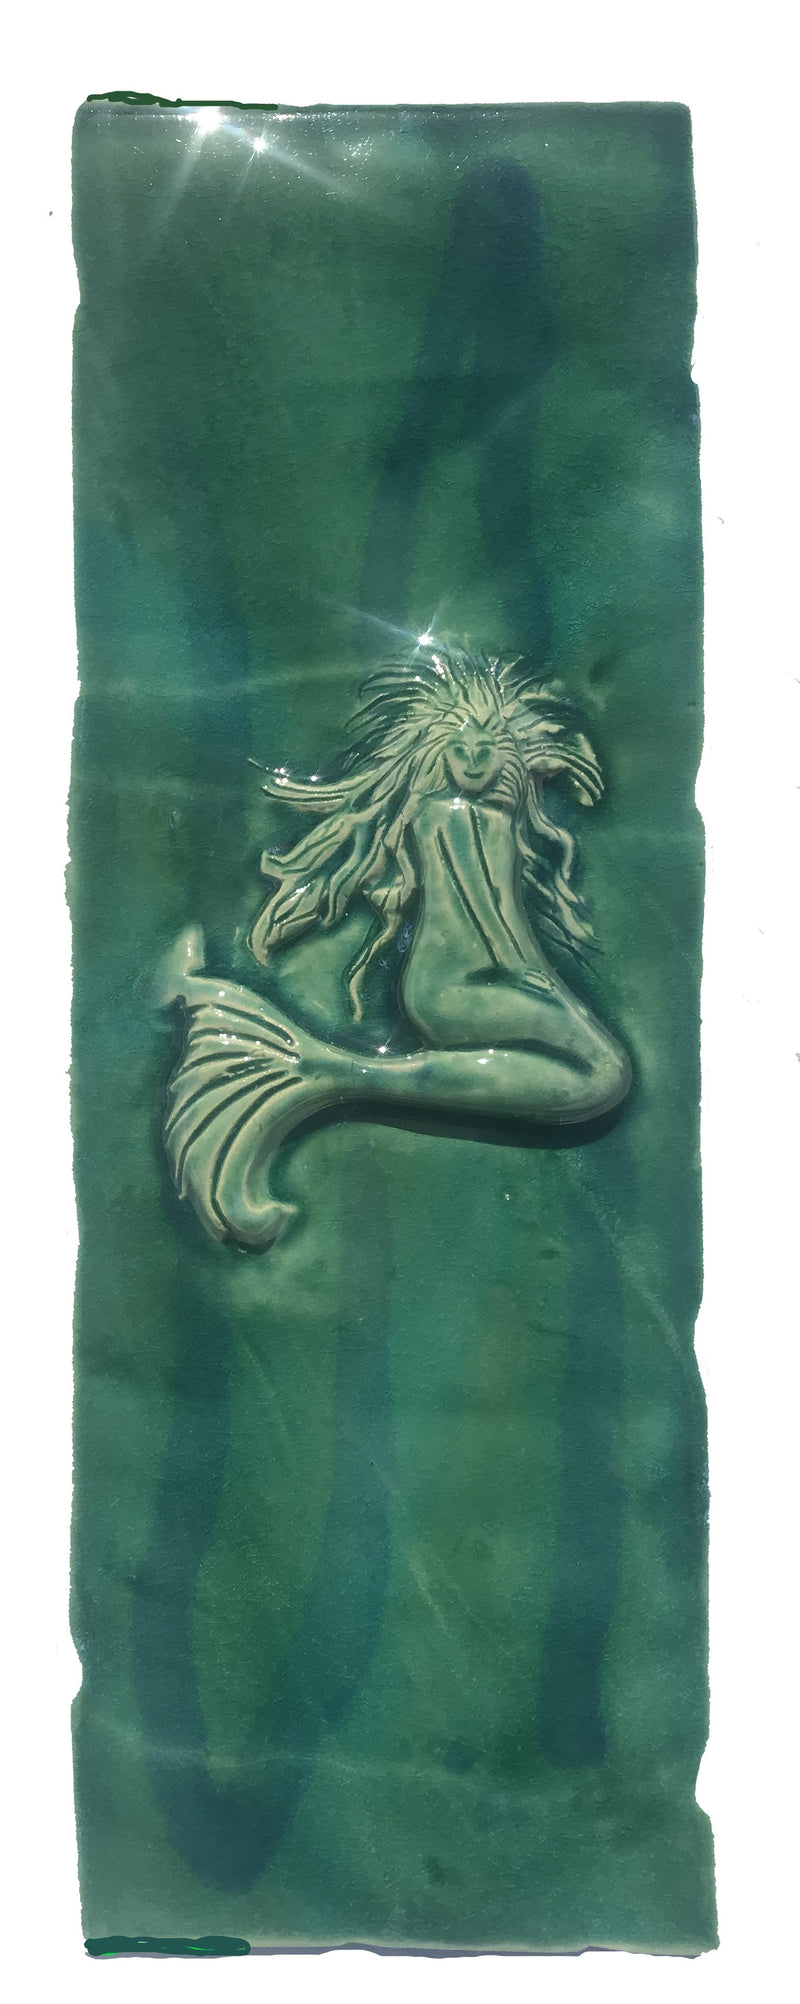 Ceramic Mermaid Design for Kitchen Backsplash Tile, Bathroom Tile, Wall Hanging